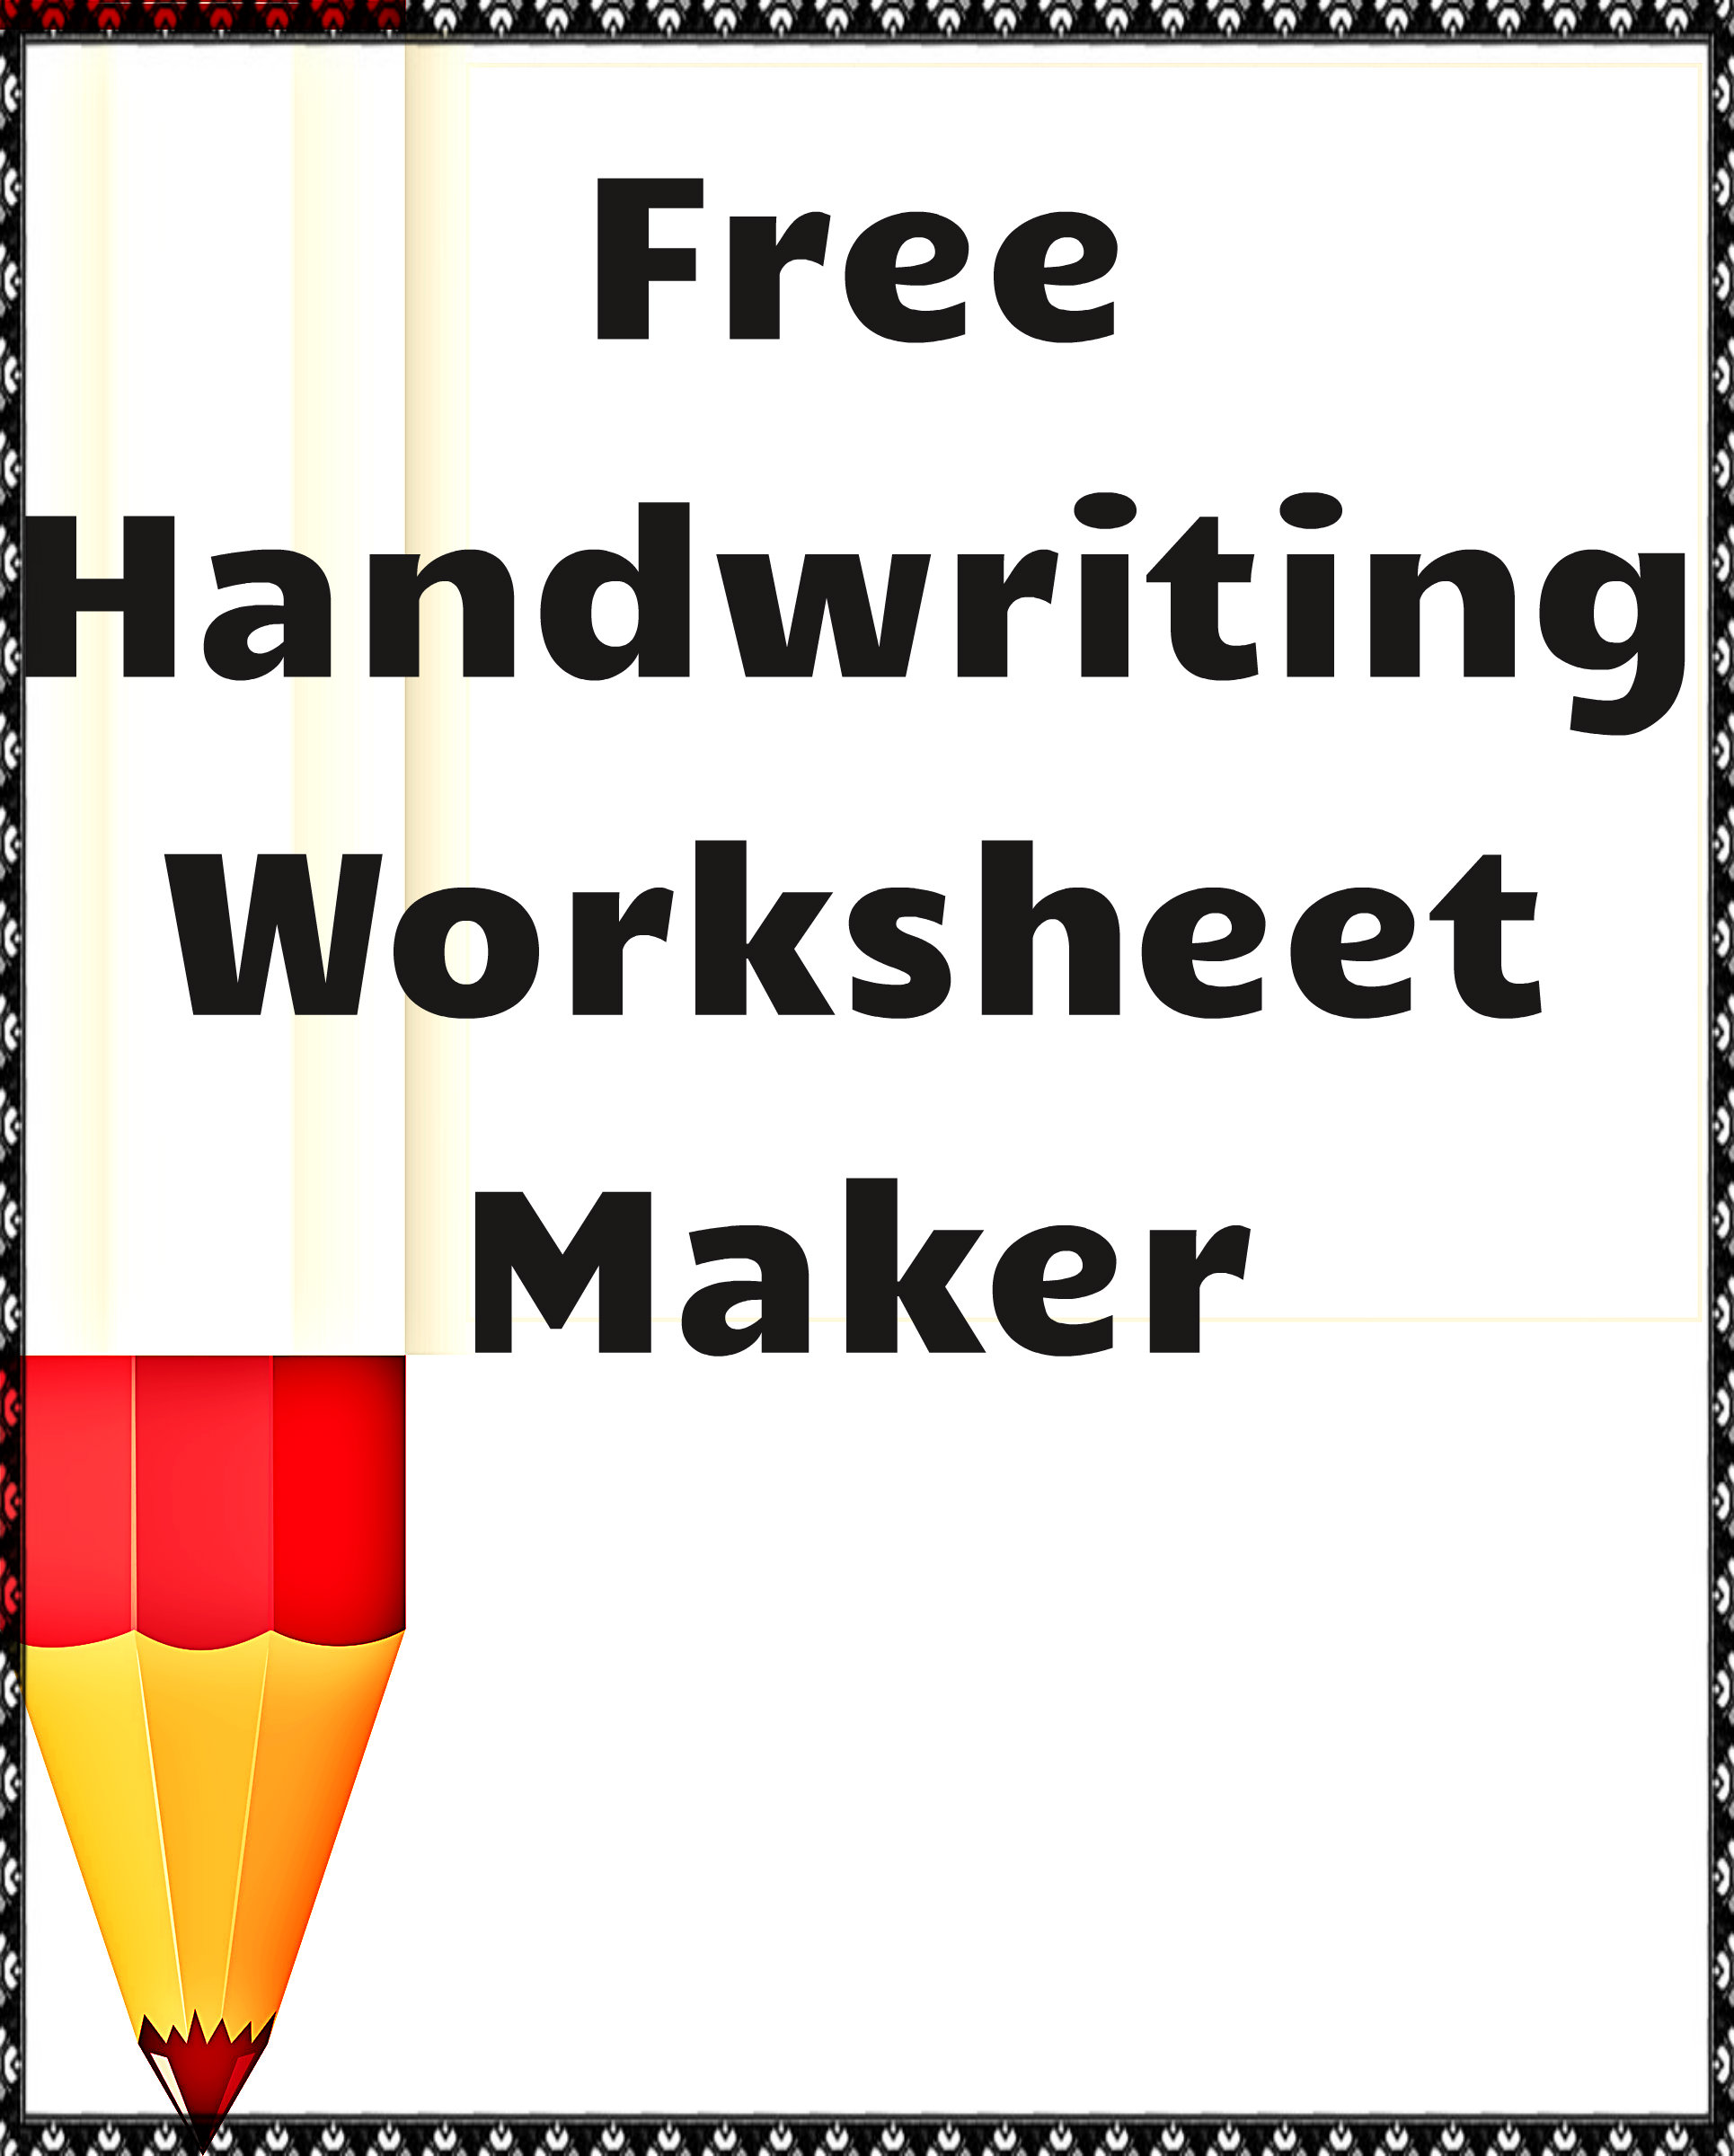 Free handwriting worksheet maker for teachers